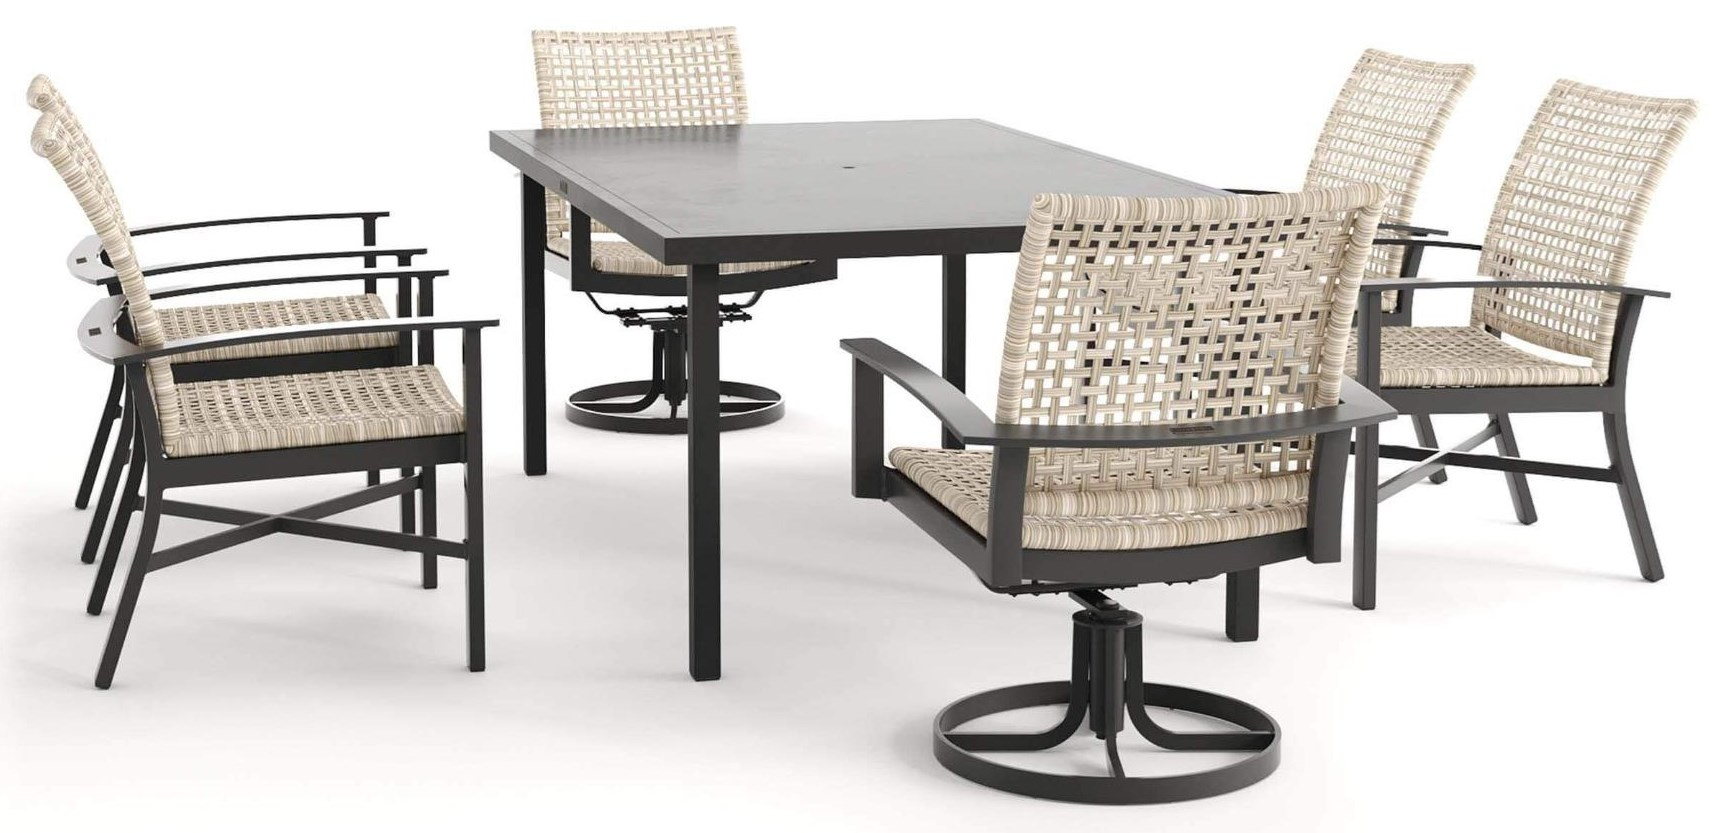 Jasper HQ 72 Inch Table, Chair, Swivel Chair by Winston at Johnny Janosik